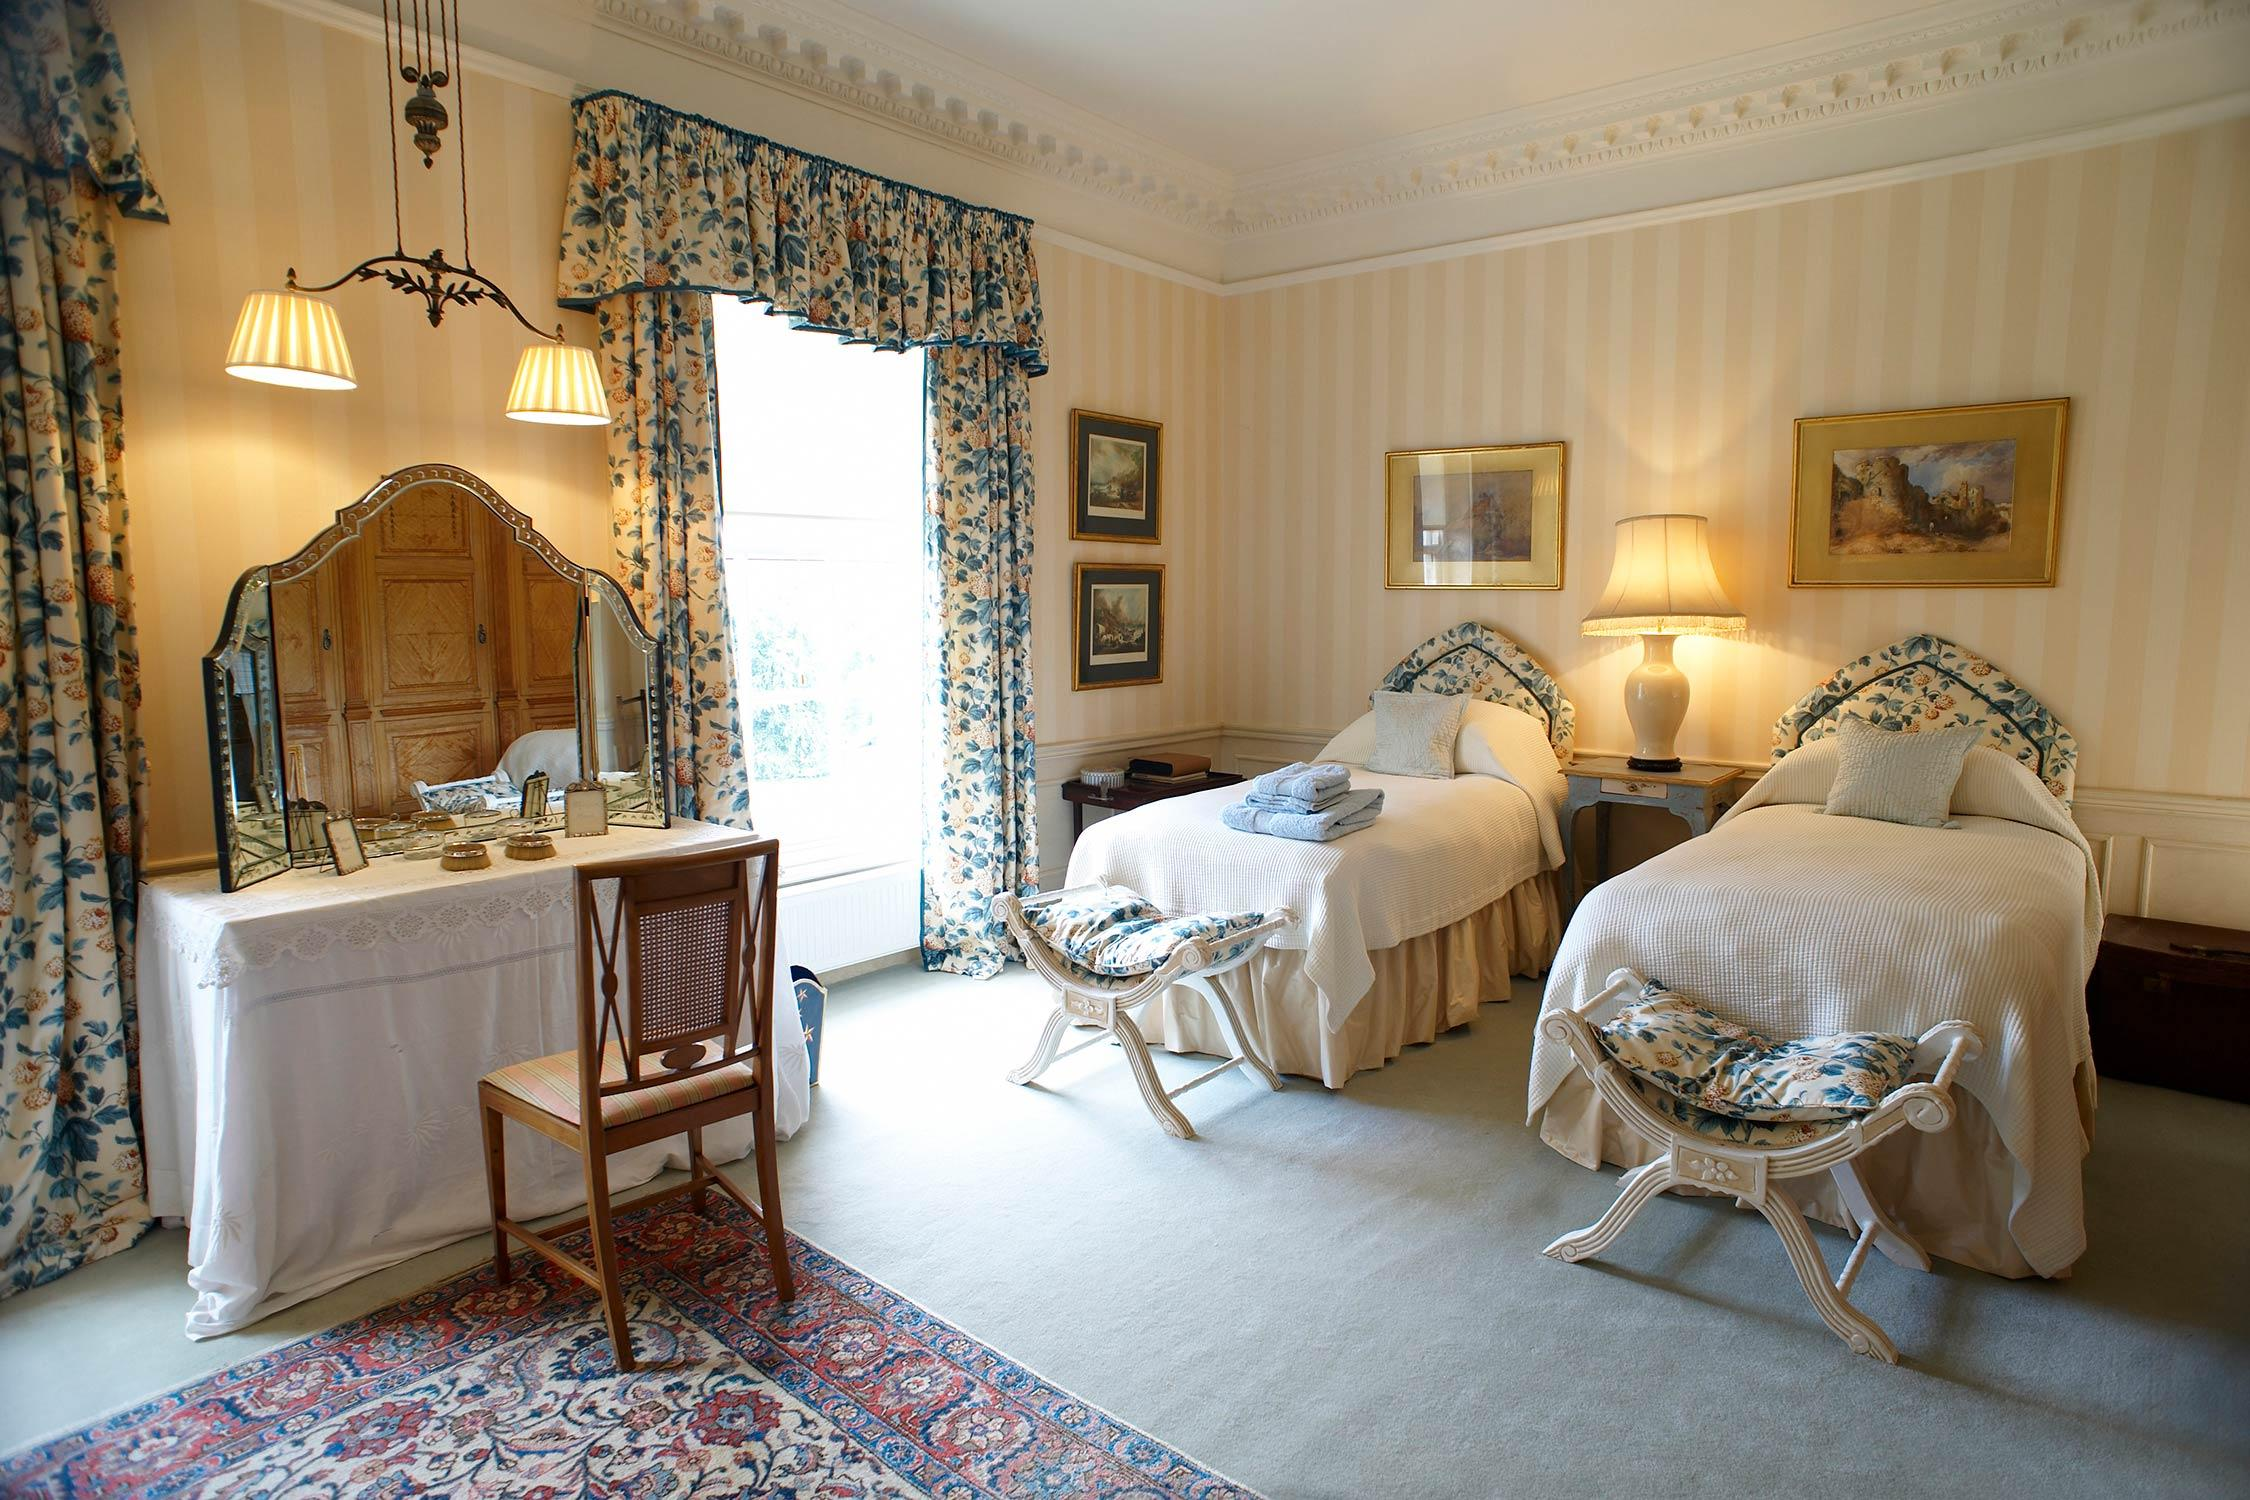 Park history shoot and stay country house and park in norfolk